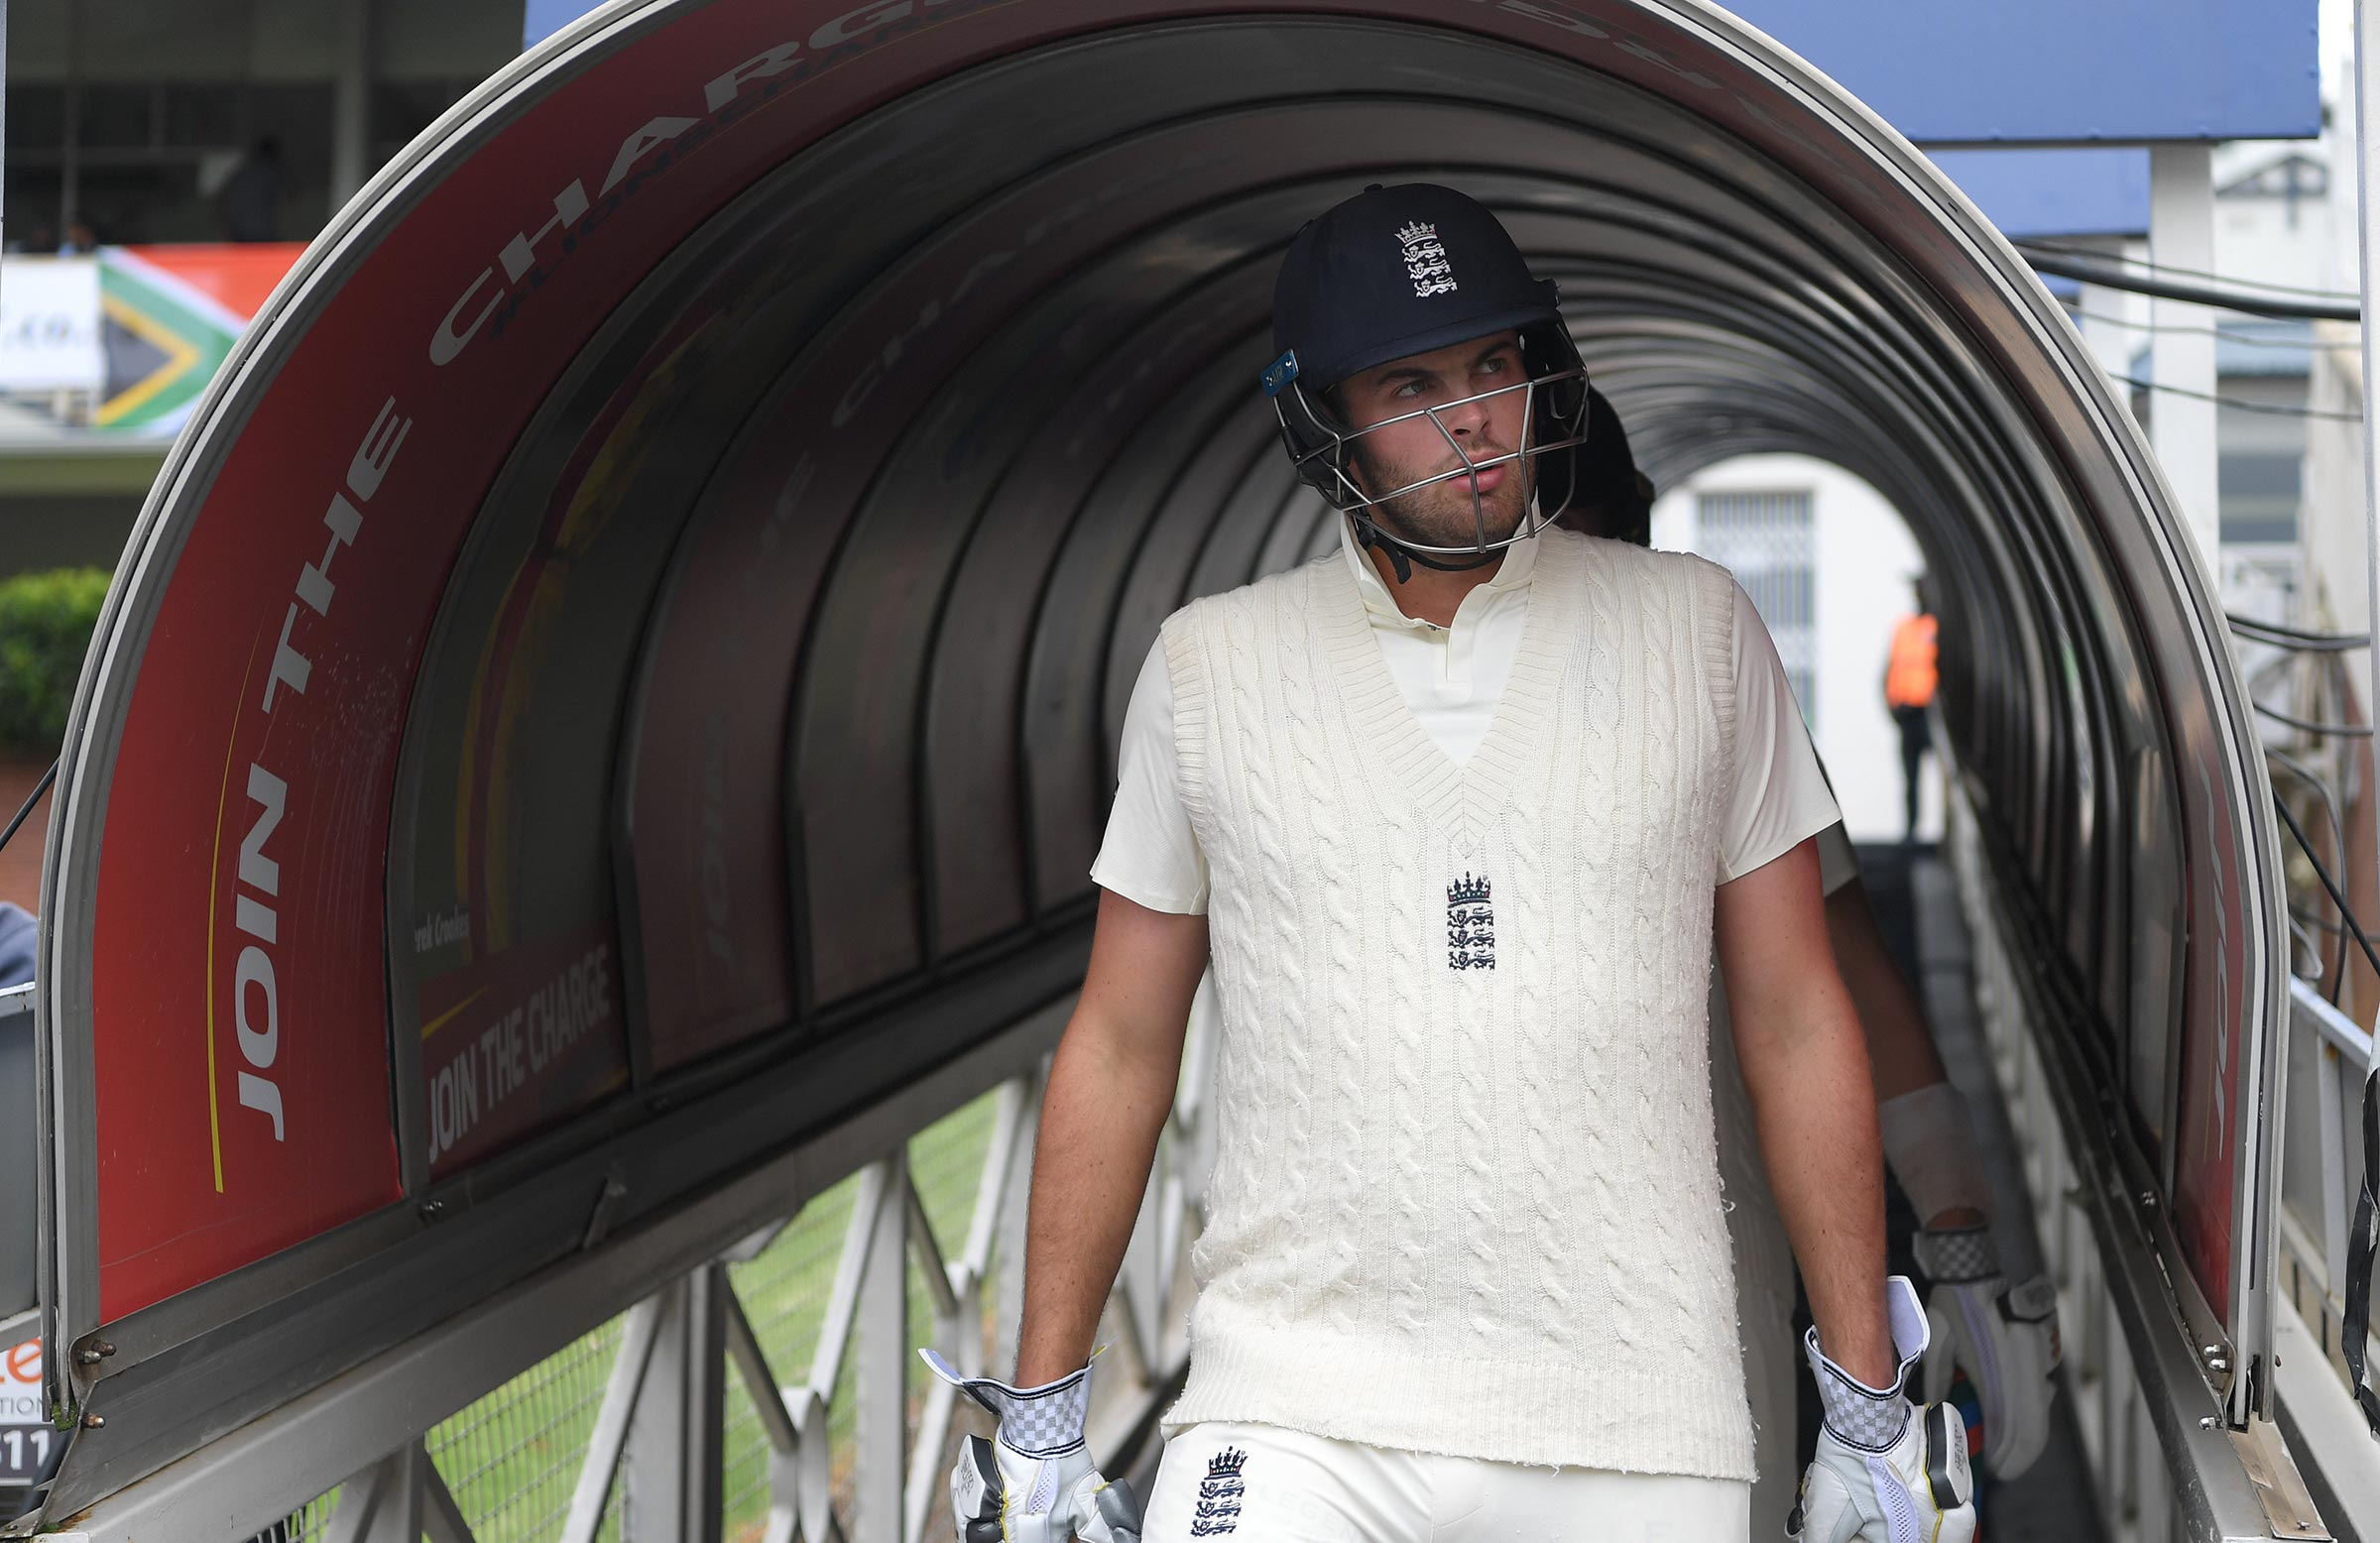 Sibley walks out of the player's tunnel at the Wanderers // Getty